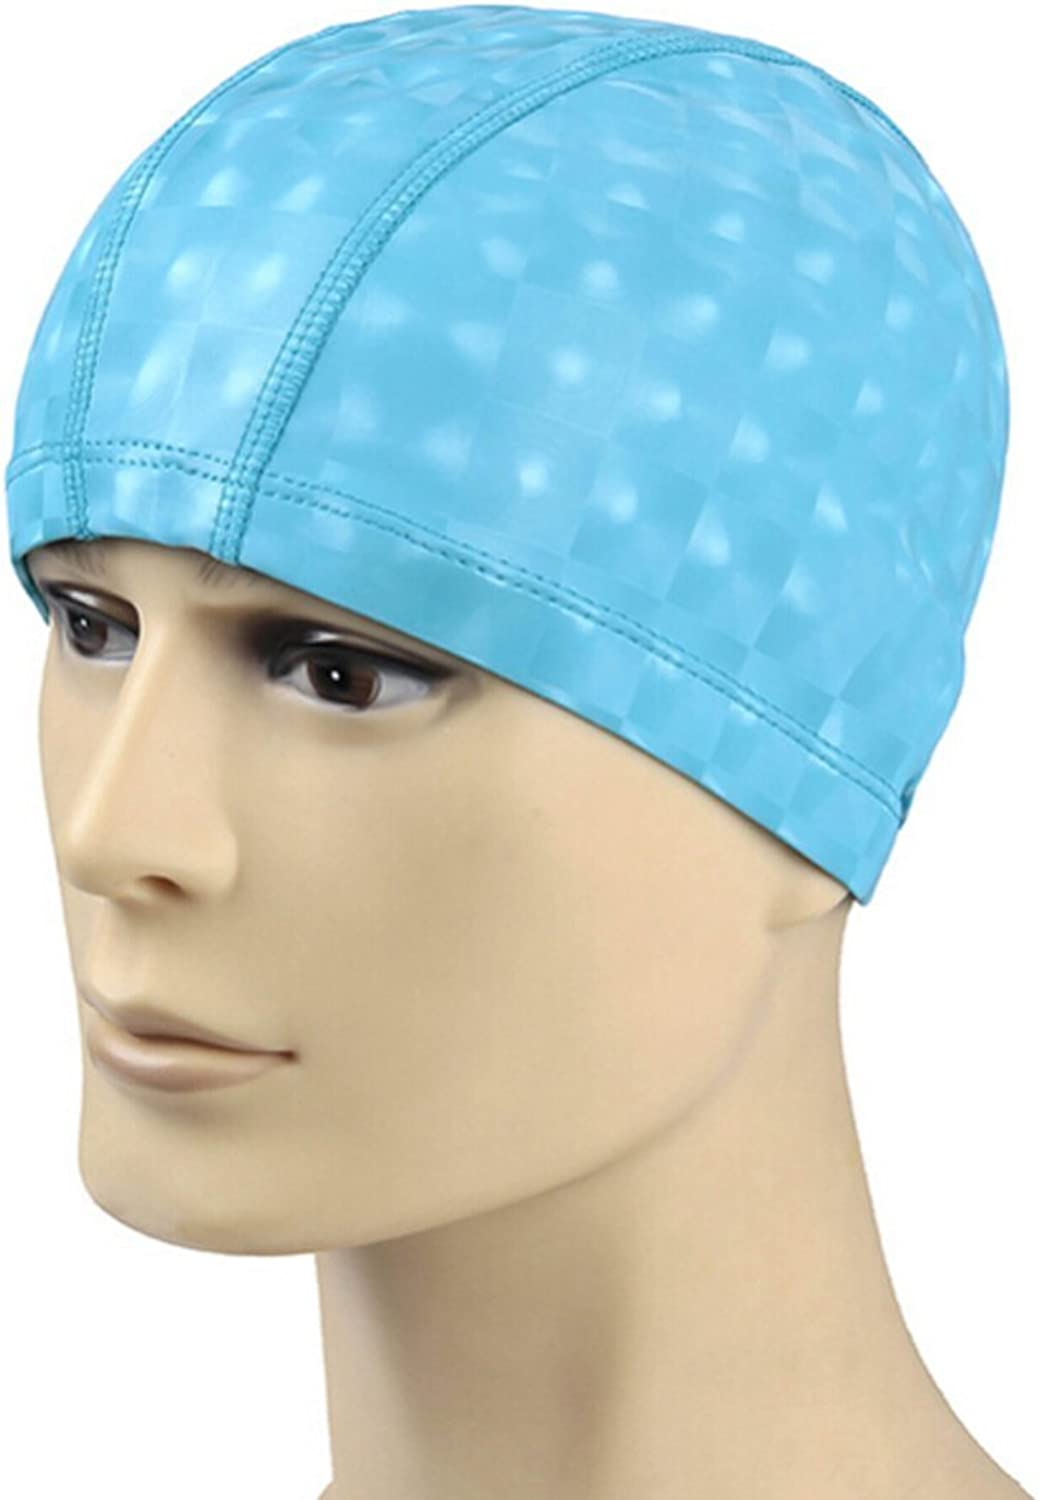 (Light blueee) - Eforstore Unisex Adult Solid Lycra Fabric Swim Cap PU Coating Cover Waterproof and Breathable Swimming Cap